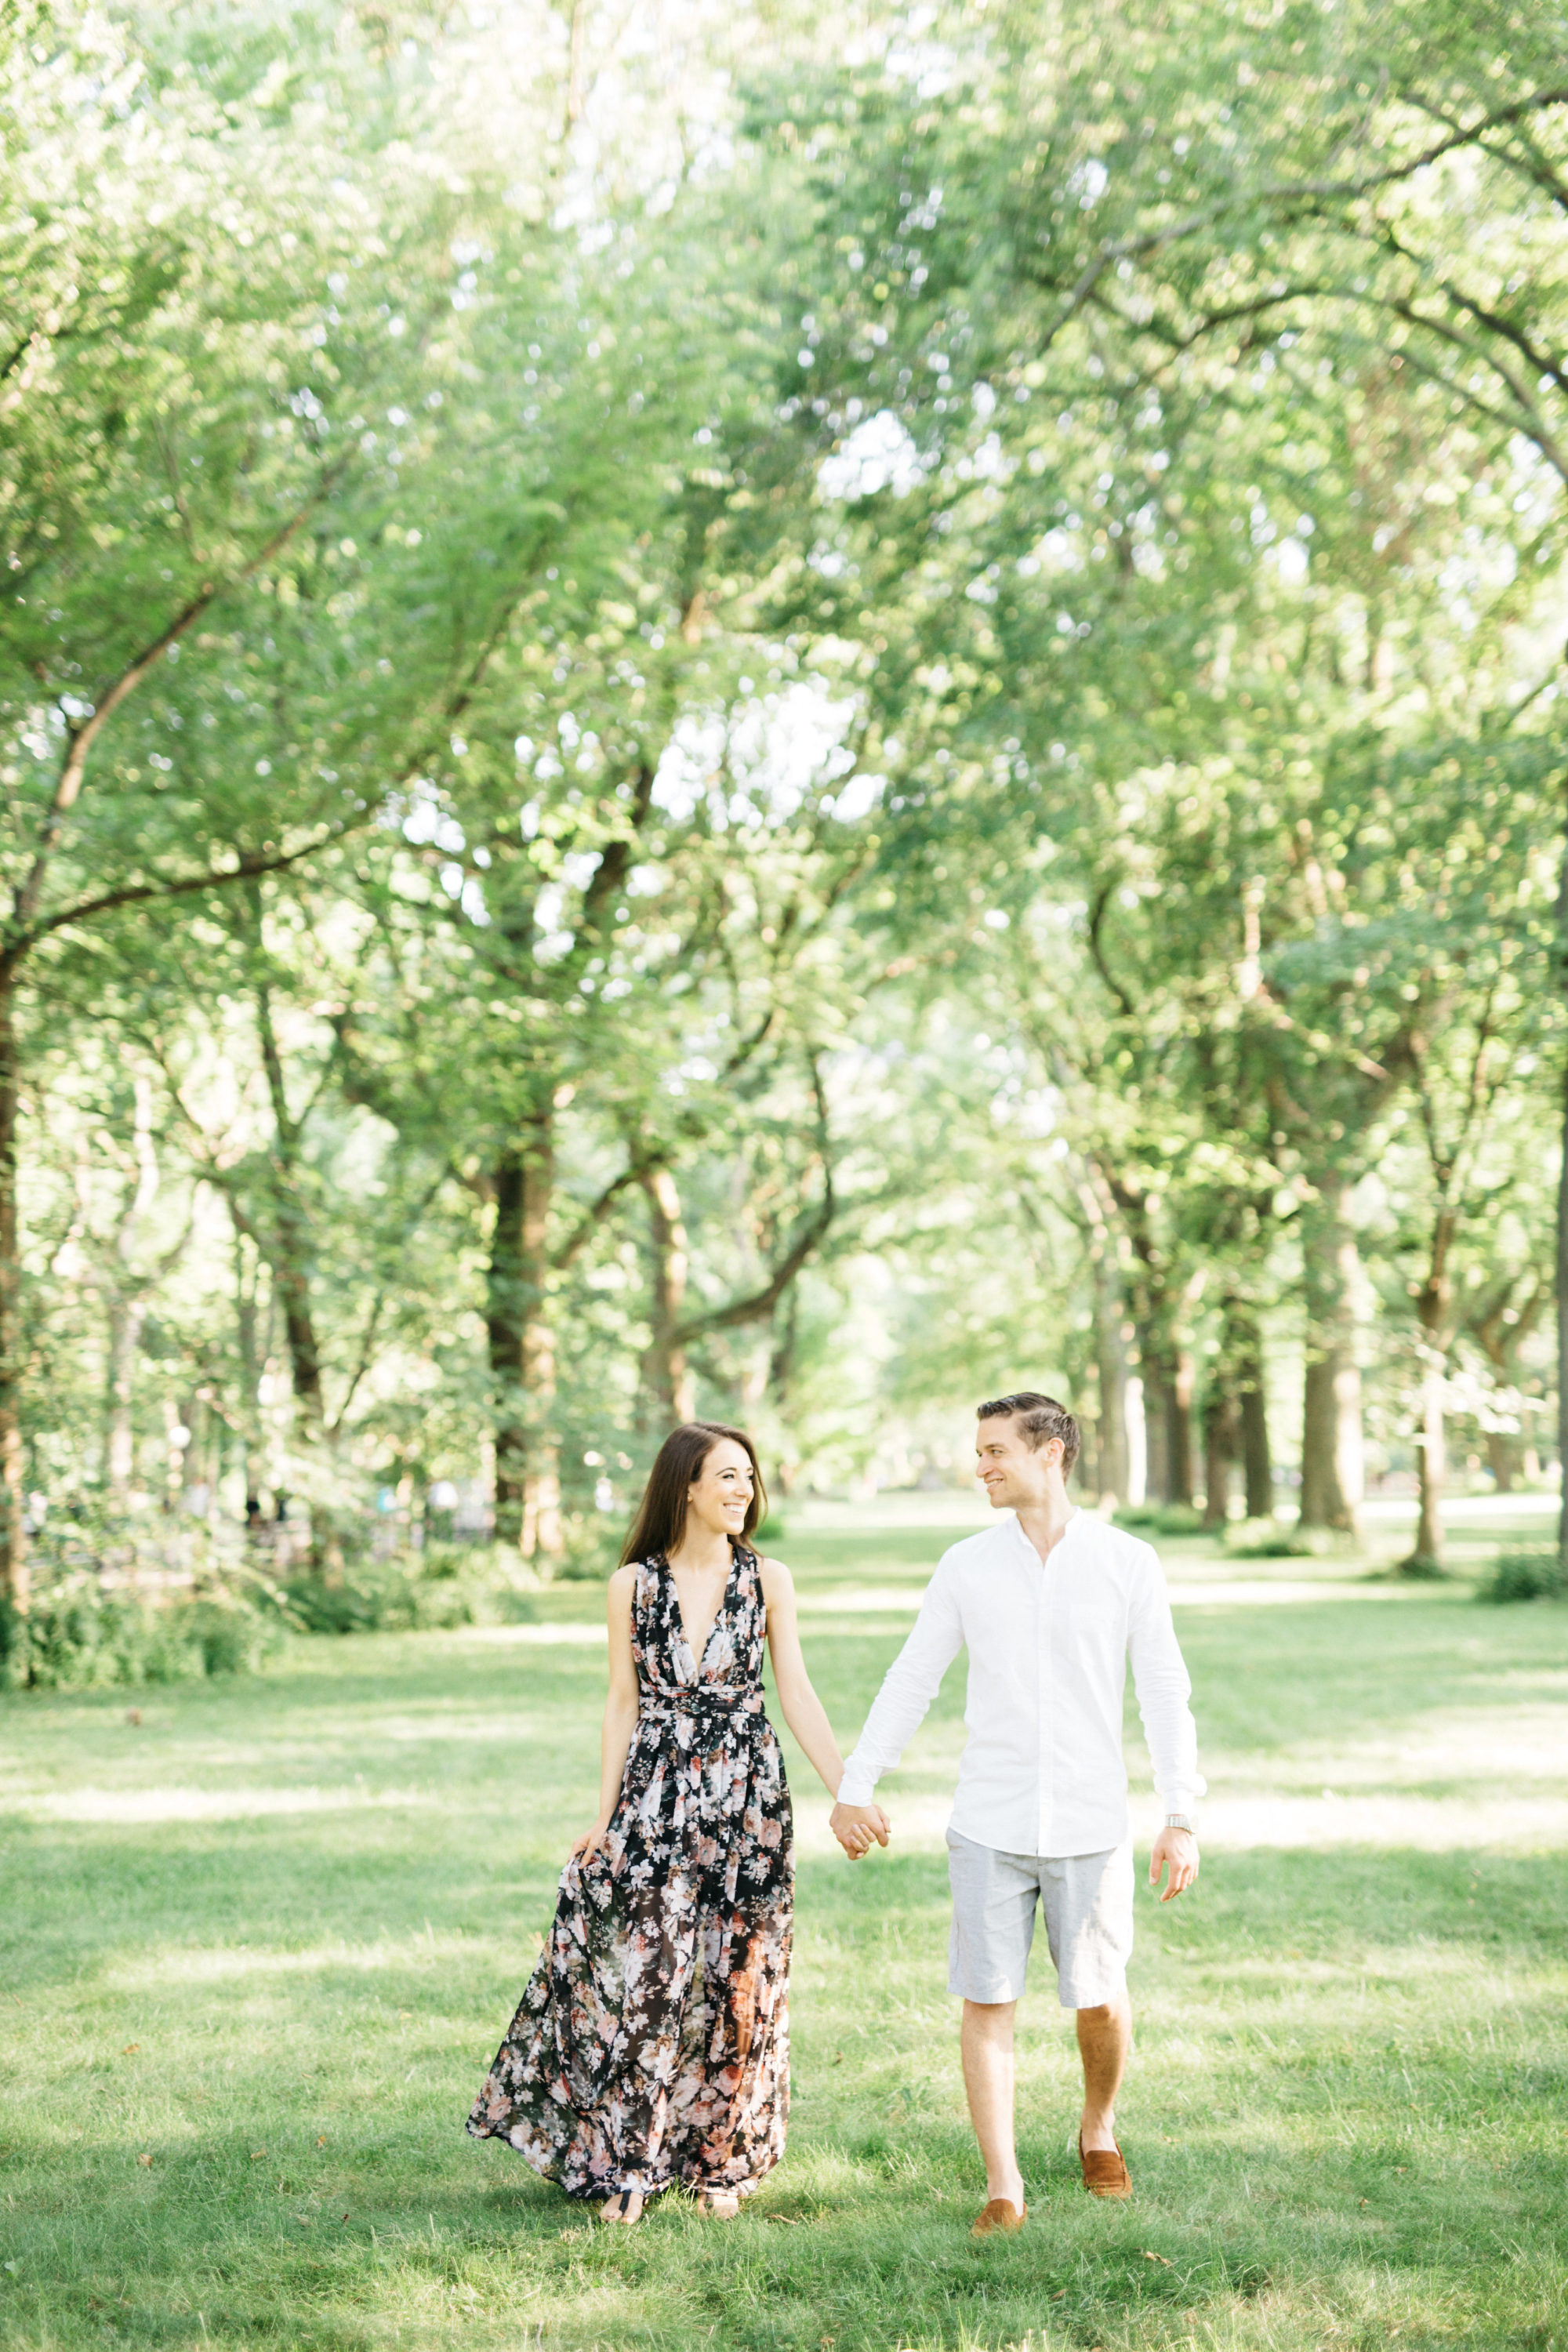 Couple walking in central park